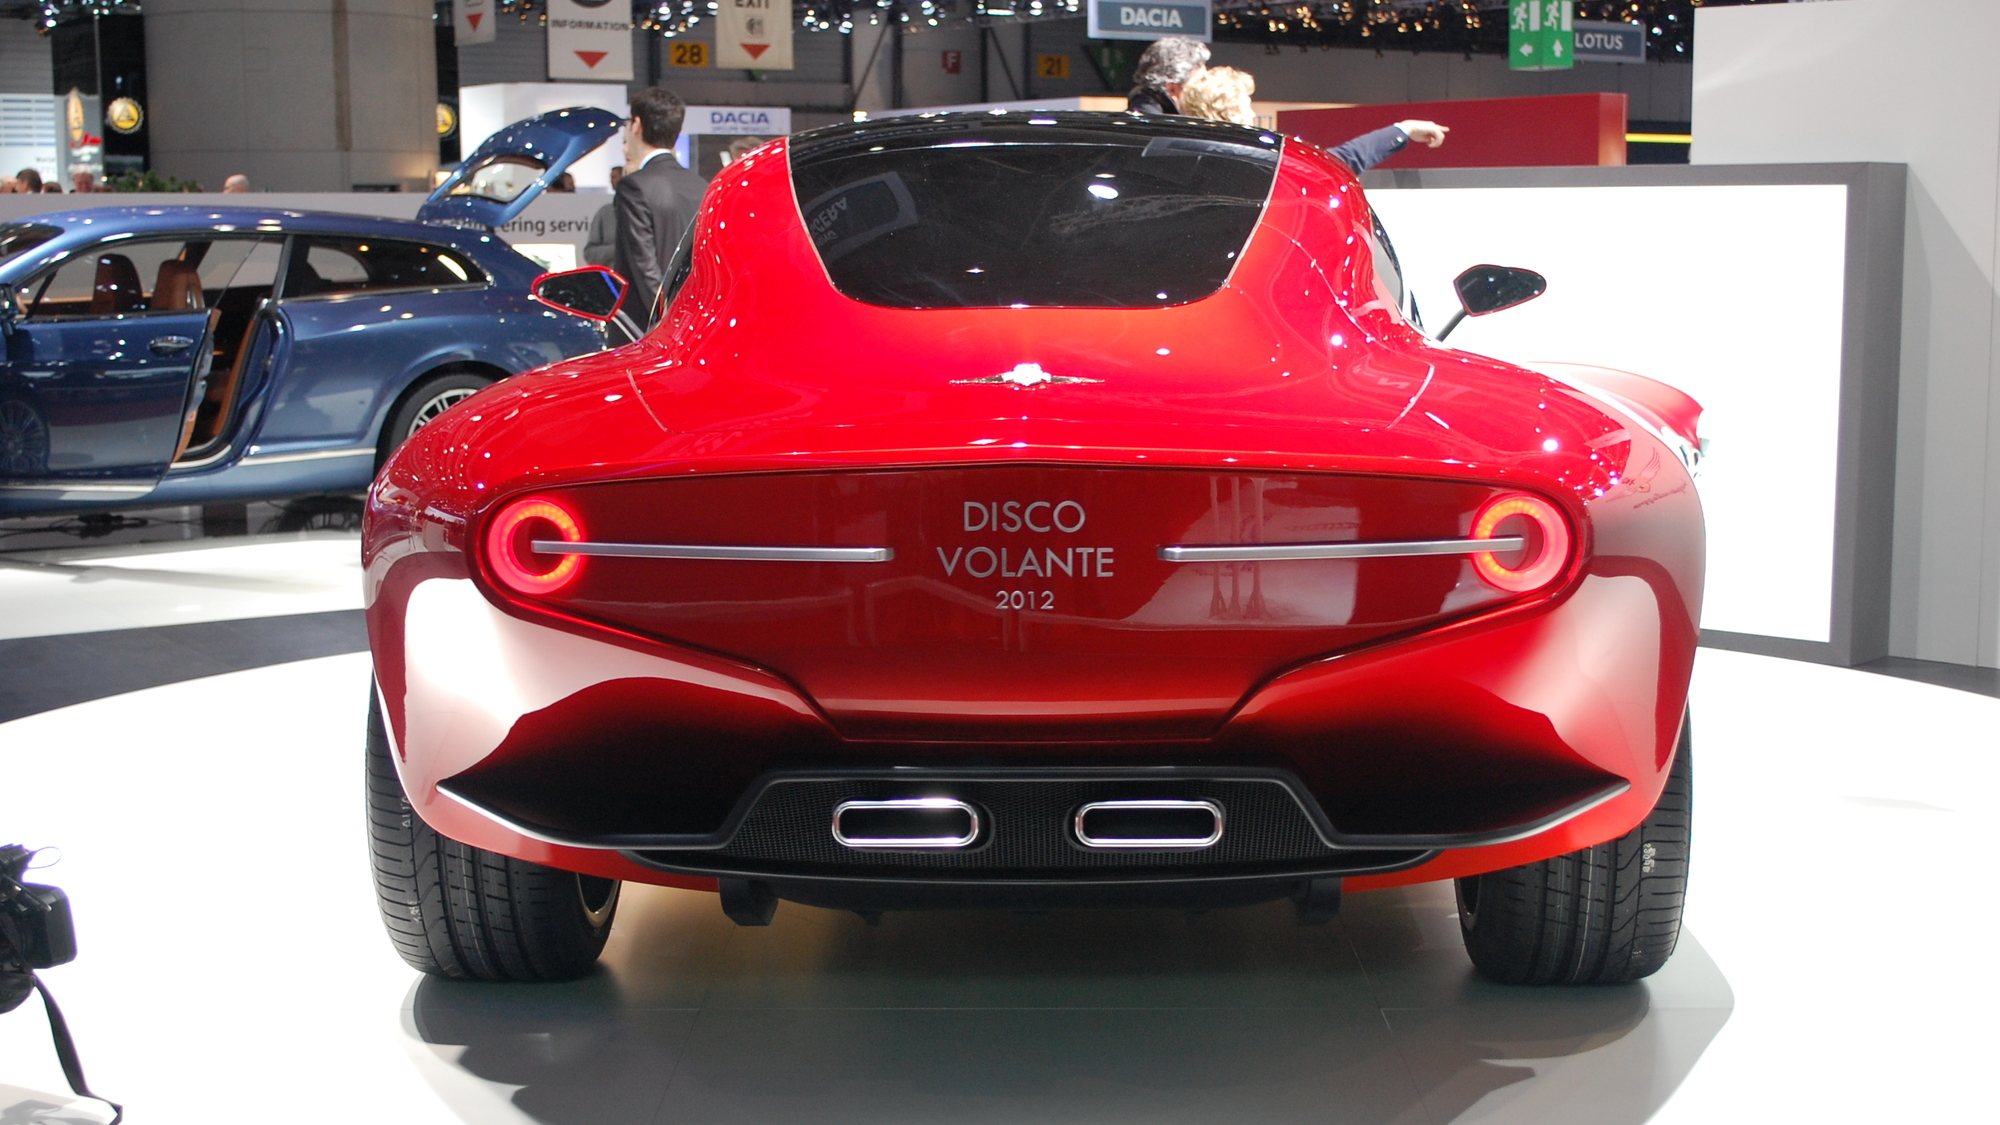 Touring Superleggera Disco Volante 2012 live photos